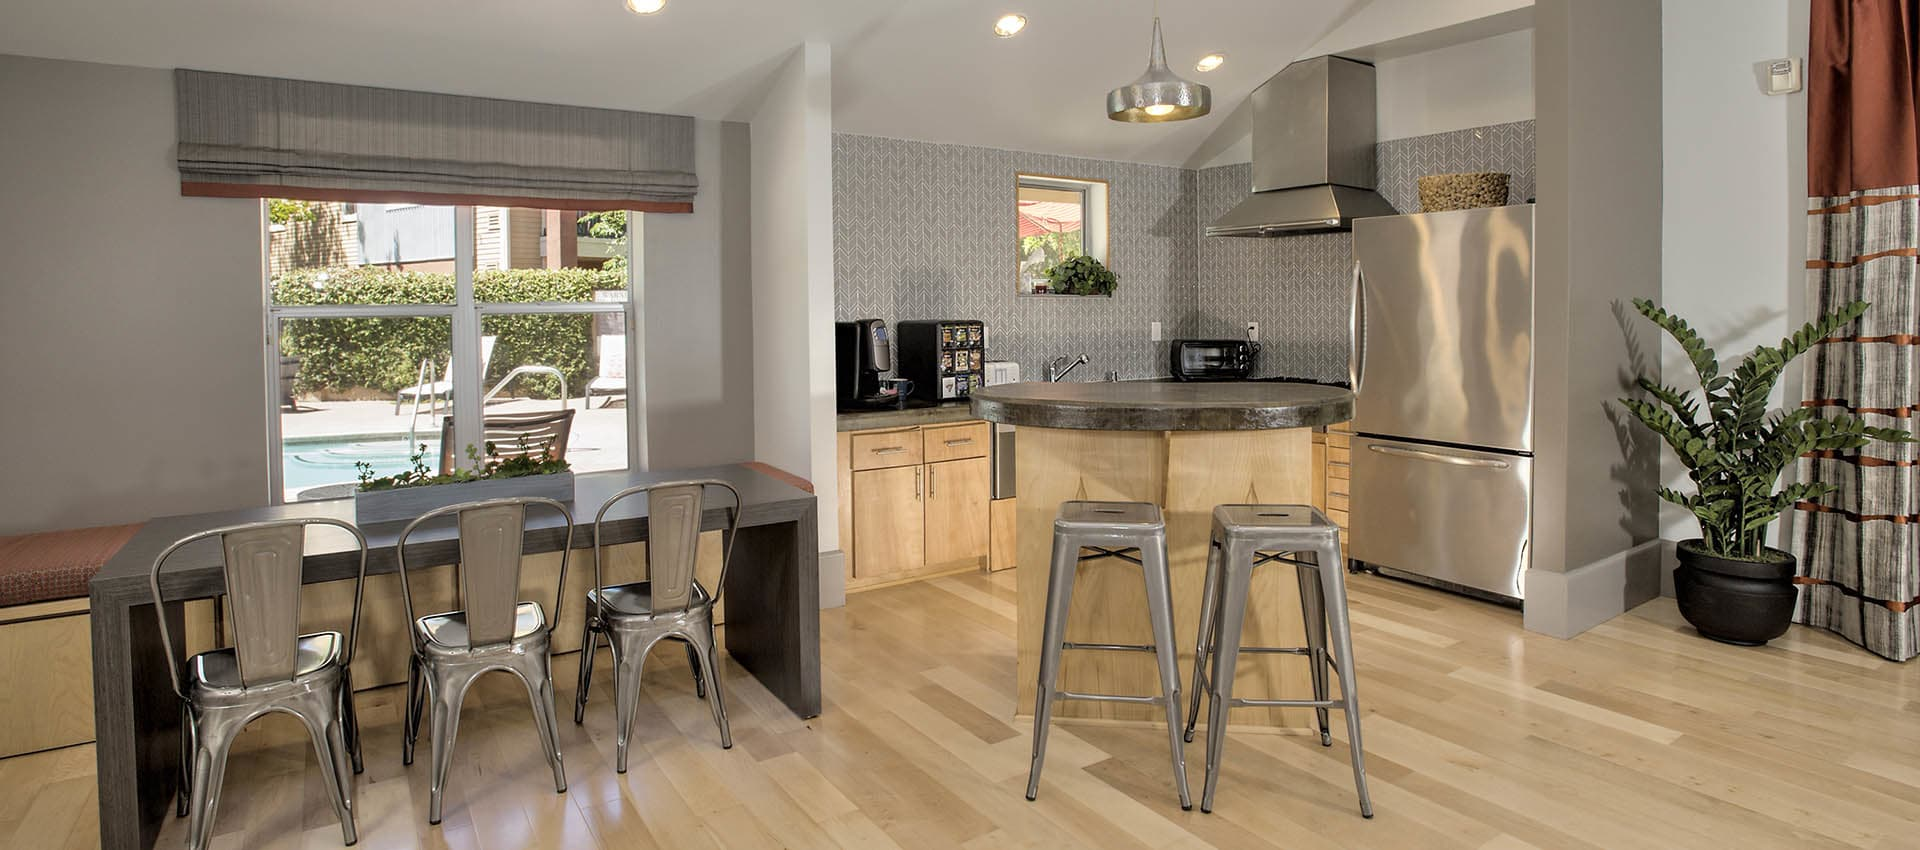 Clubhouse With Gathering Kitchen at Azure Apartment Homes in Petaluma, California